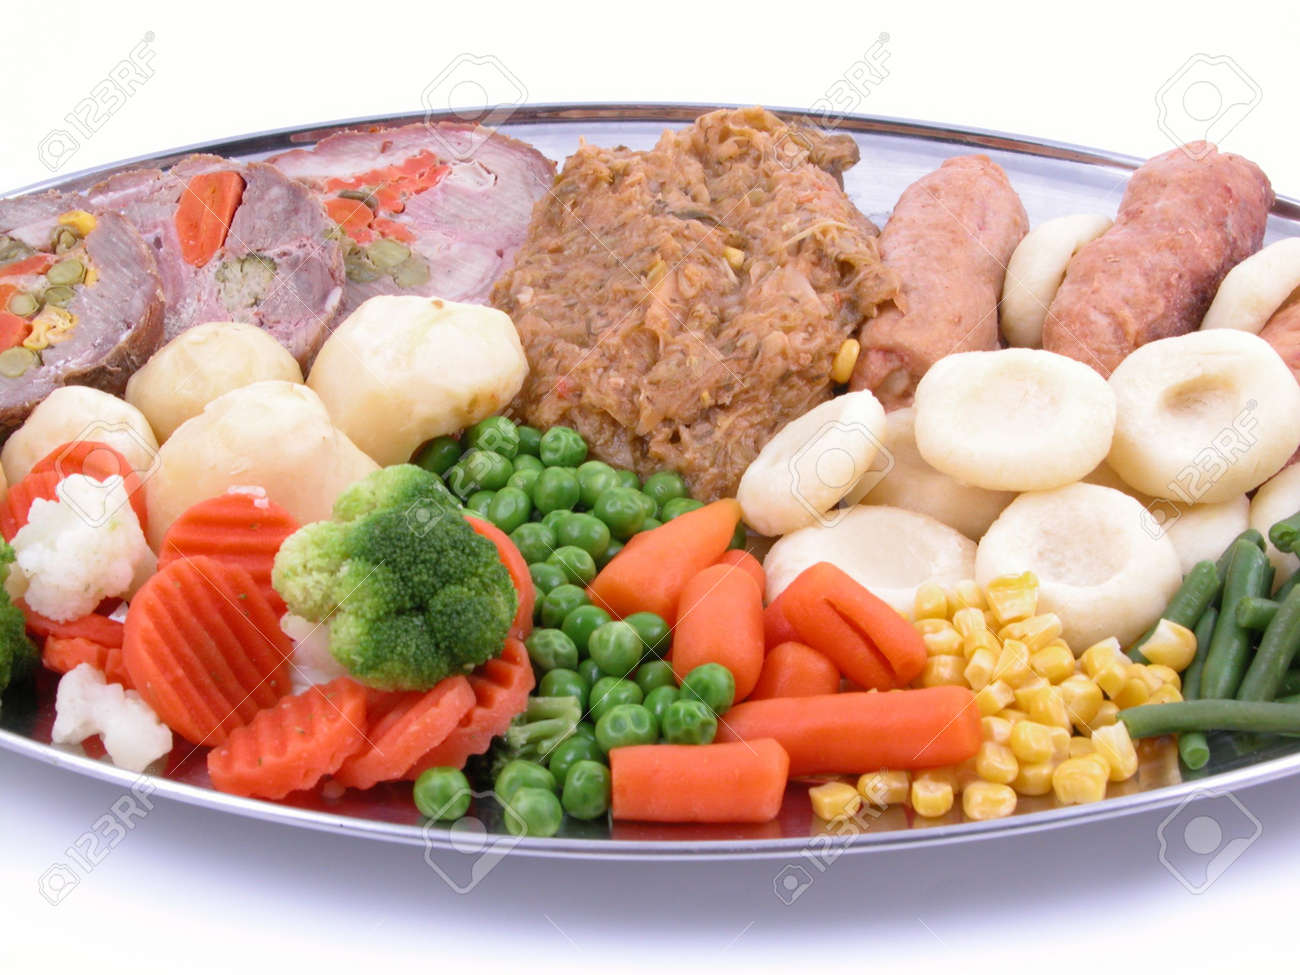 plate full of cooked vegetables and meat Stock Photo - 518877